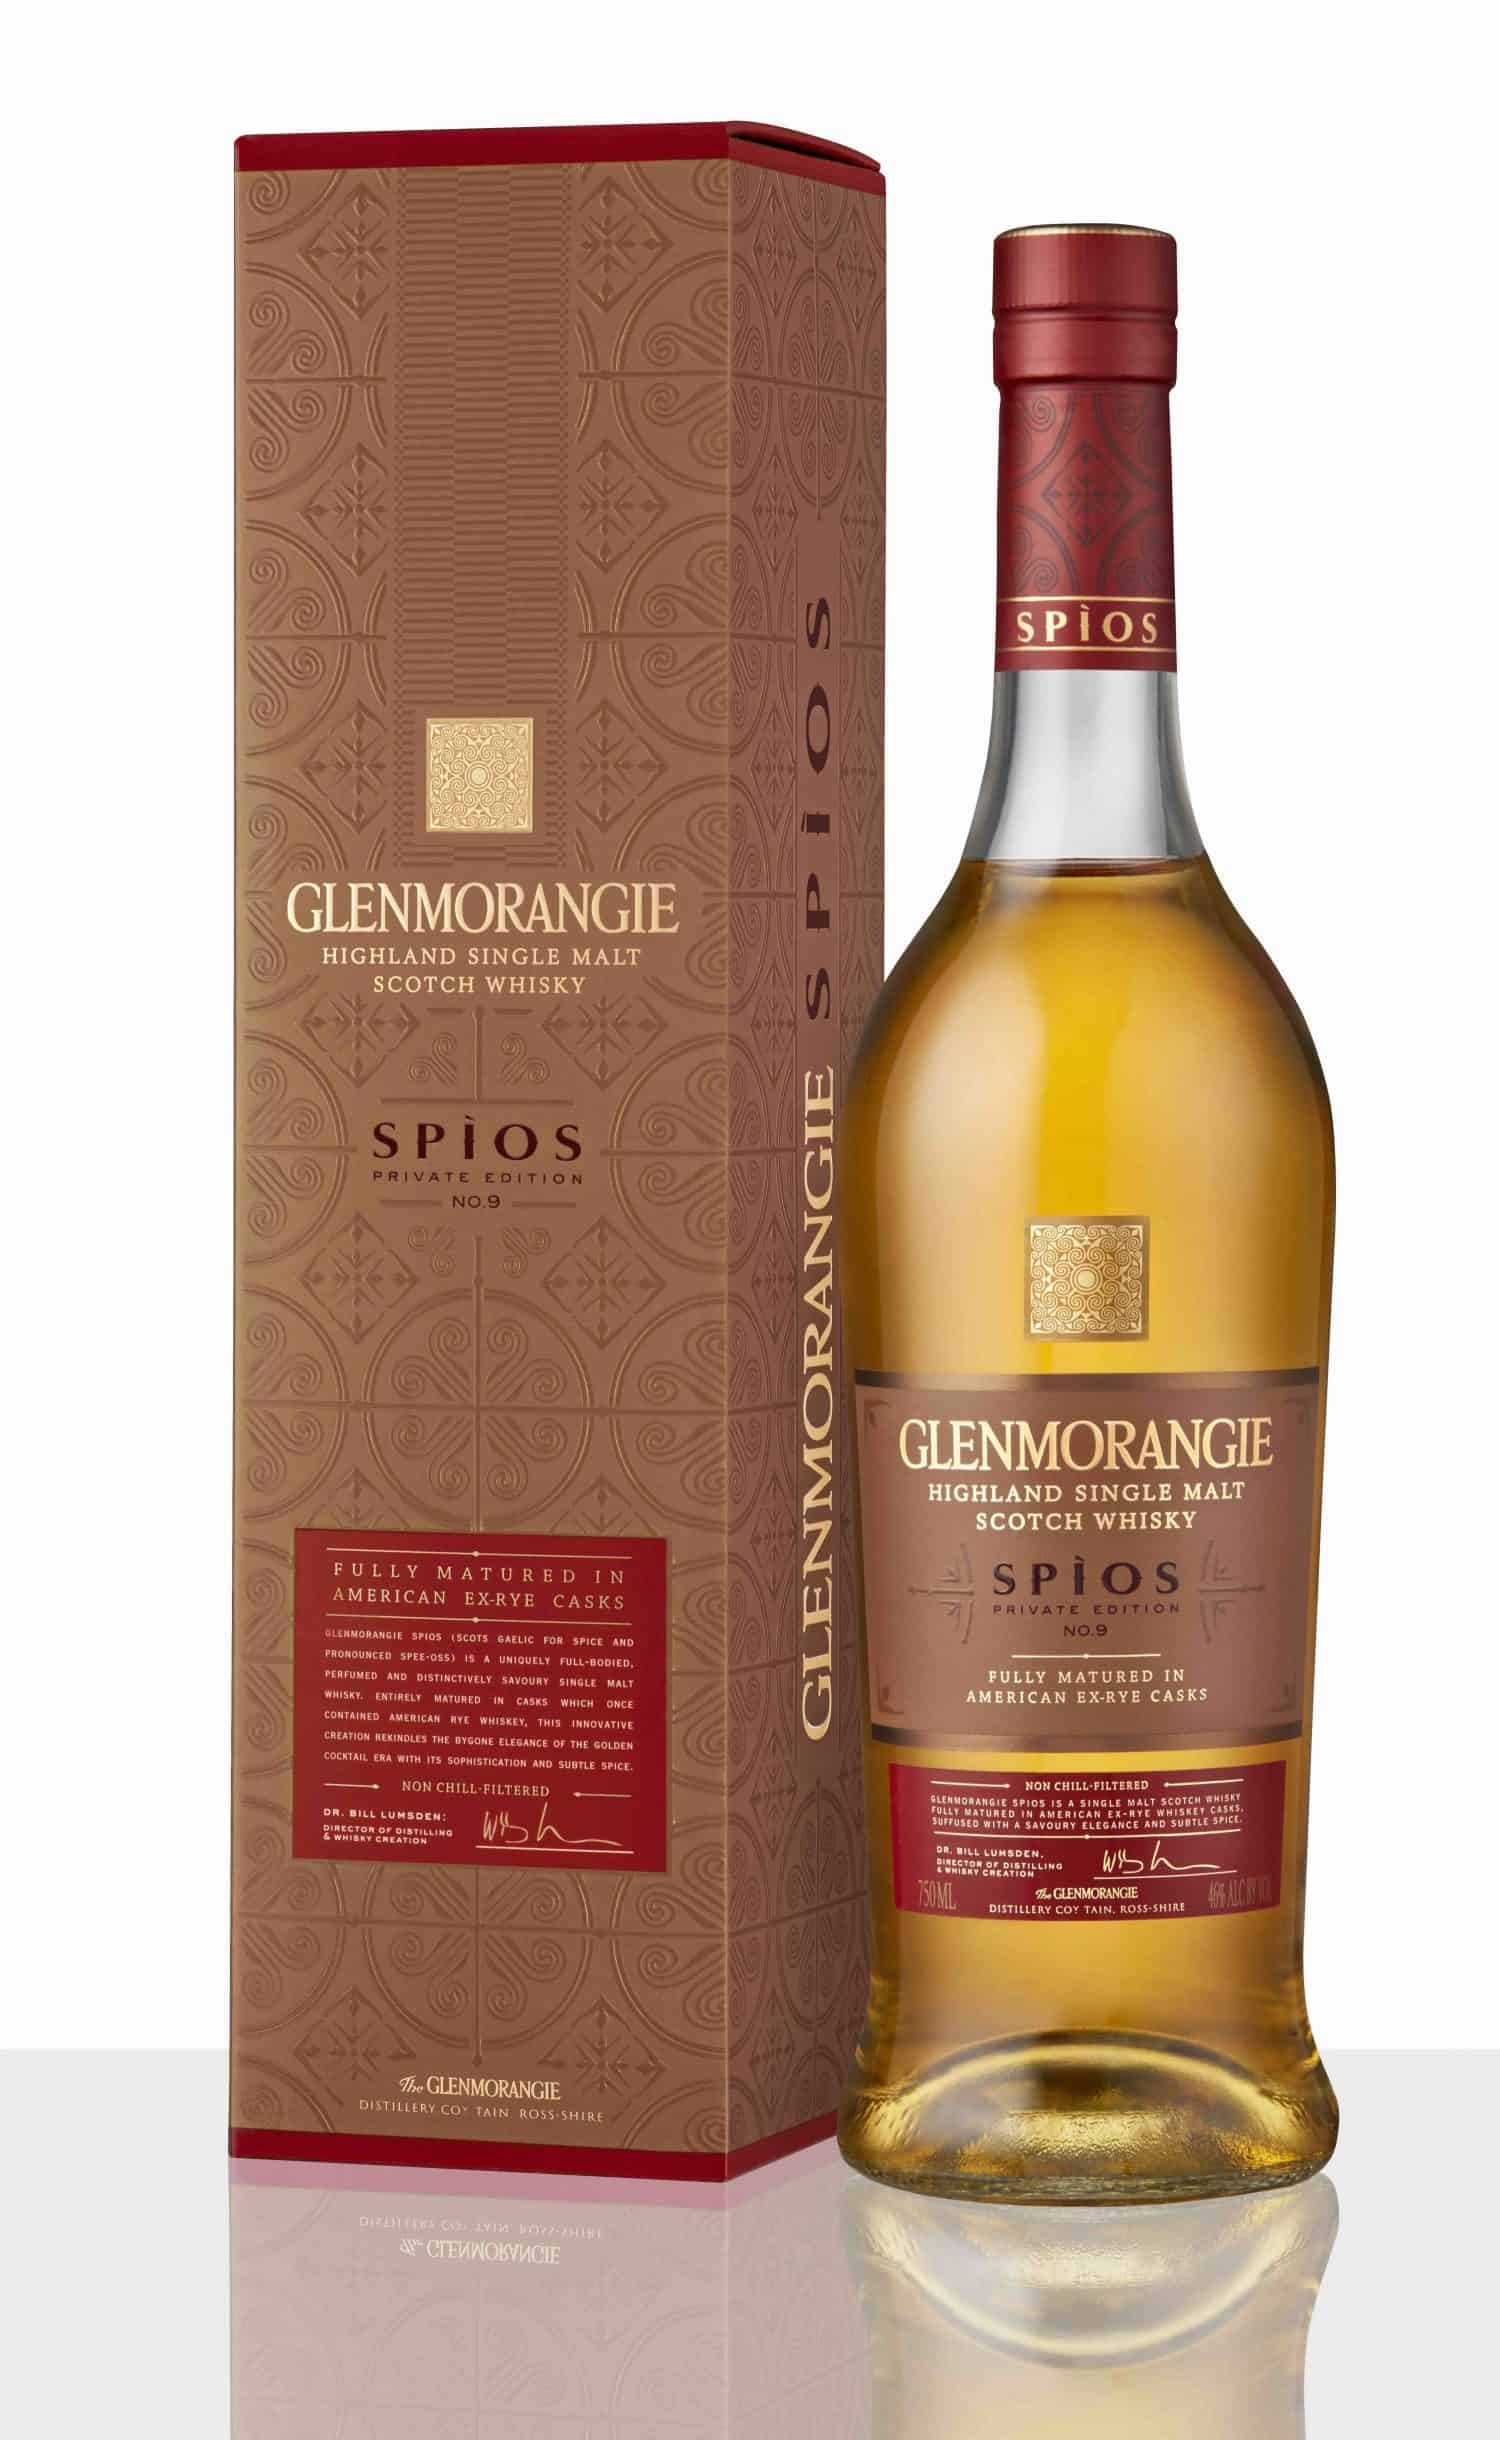 Glenmorangie Private Edition 9 Spios_Bottle and Pack